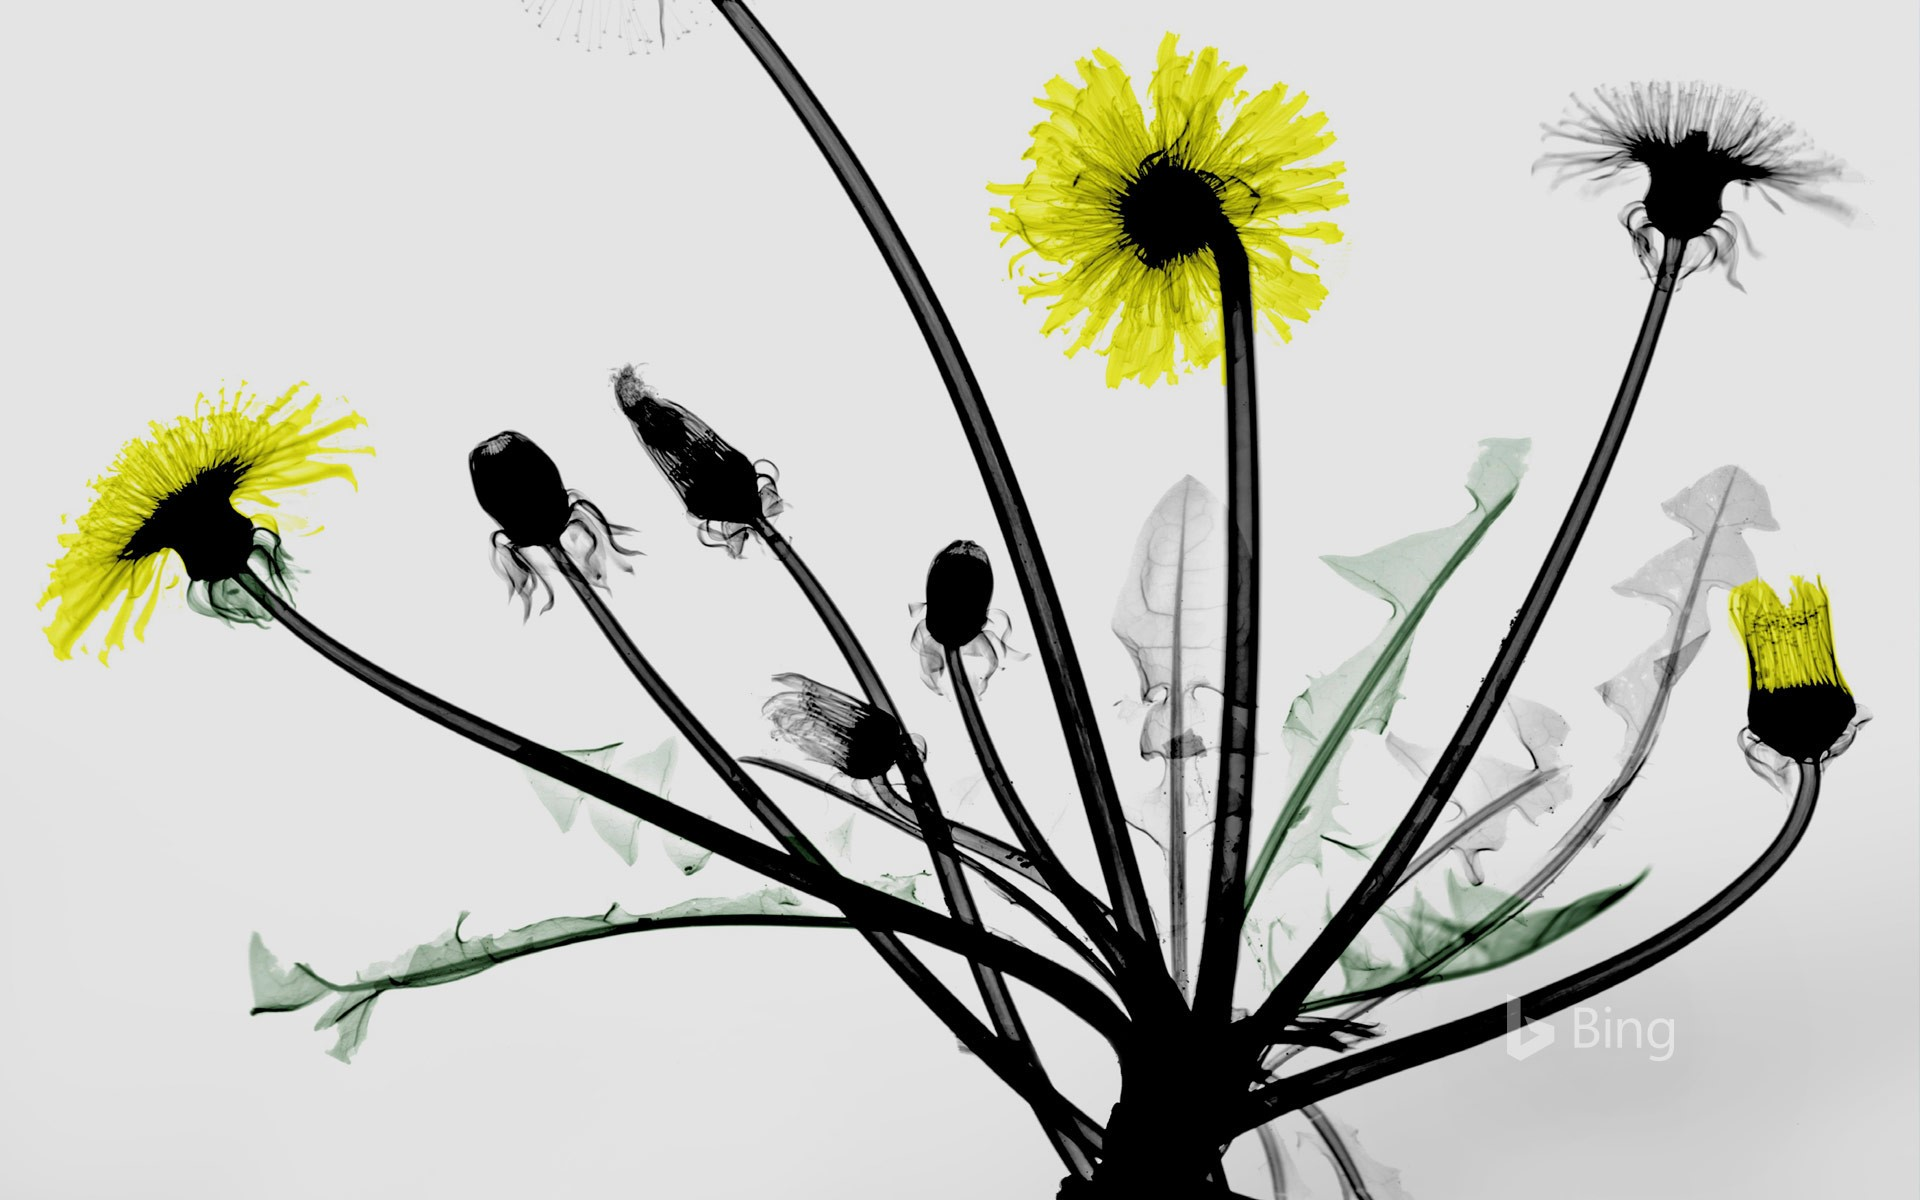 Colored X-ray of dandelion flowers